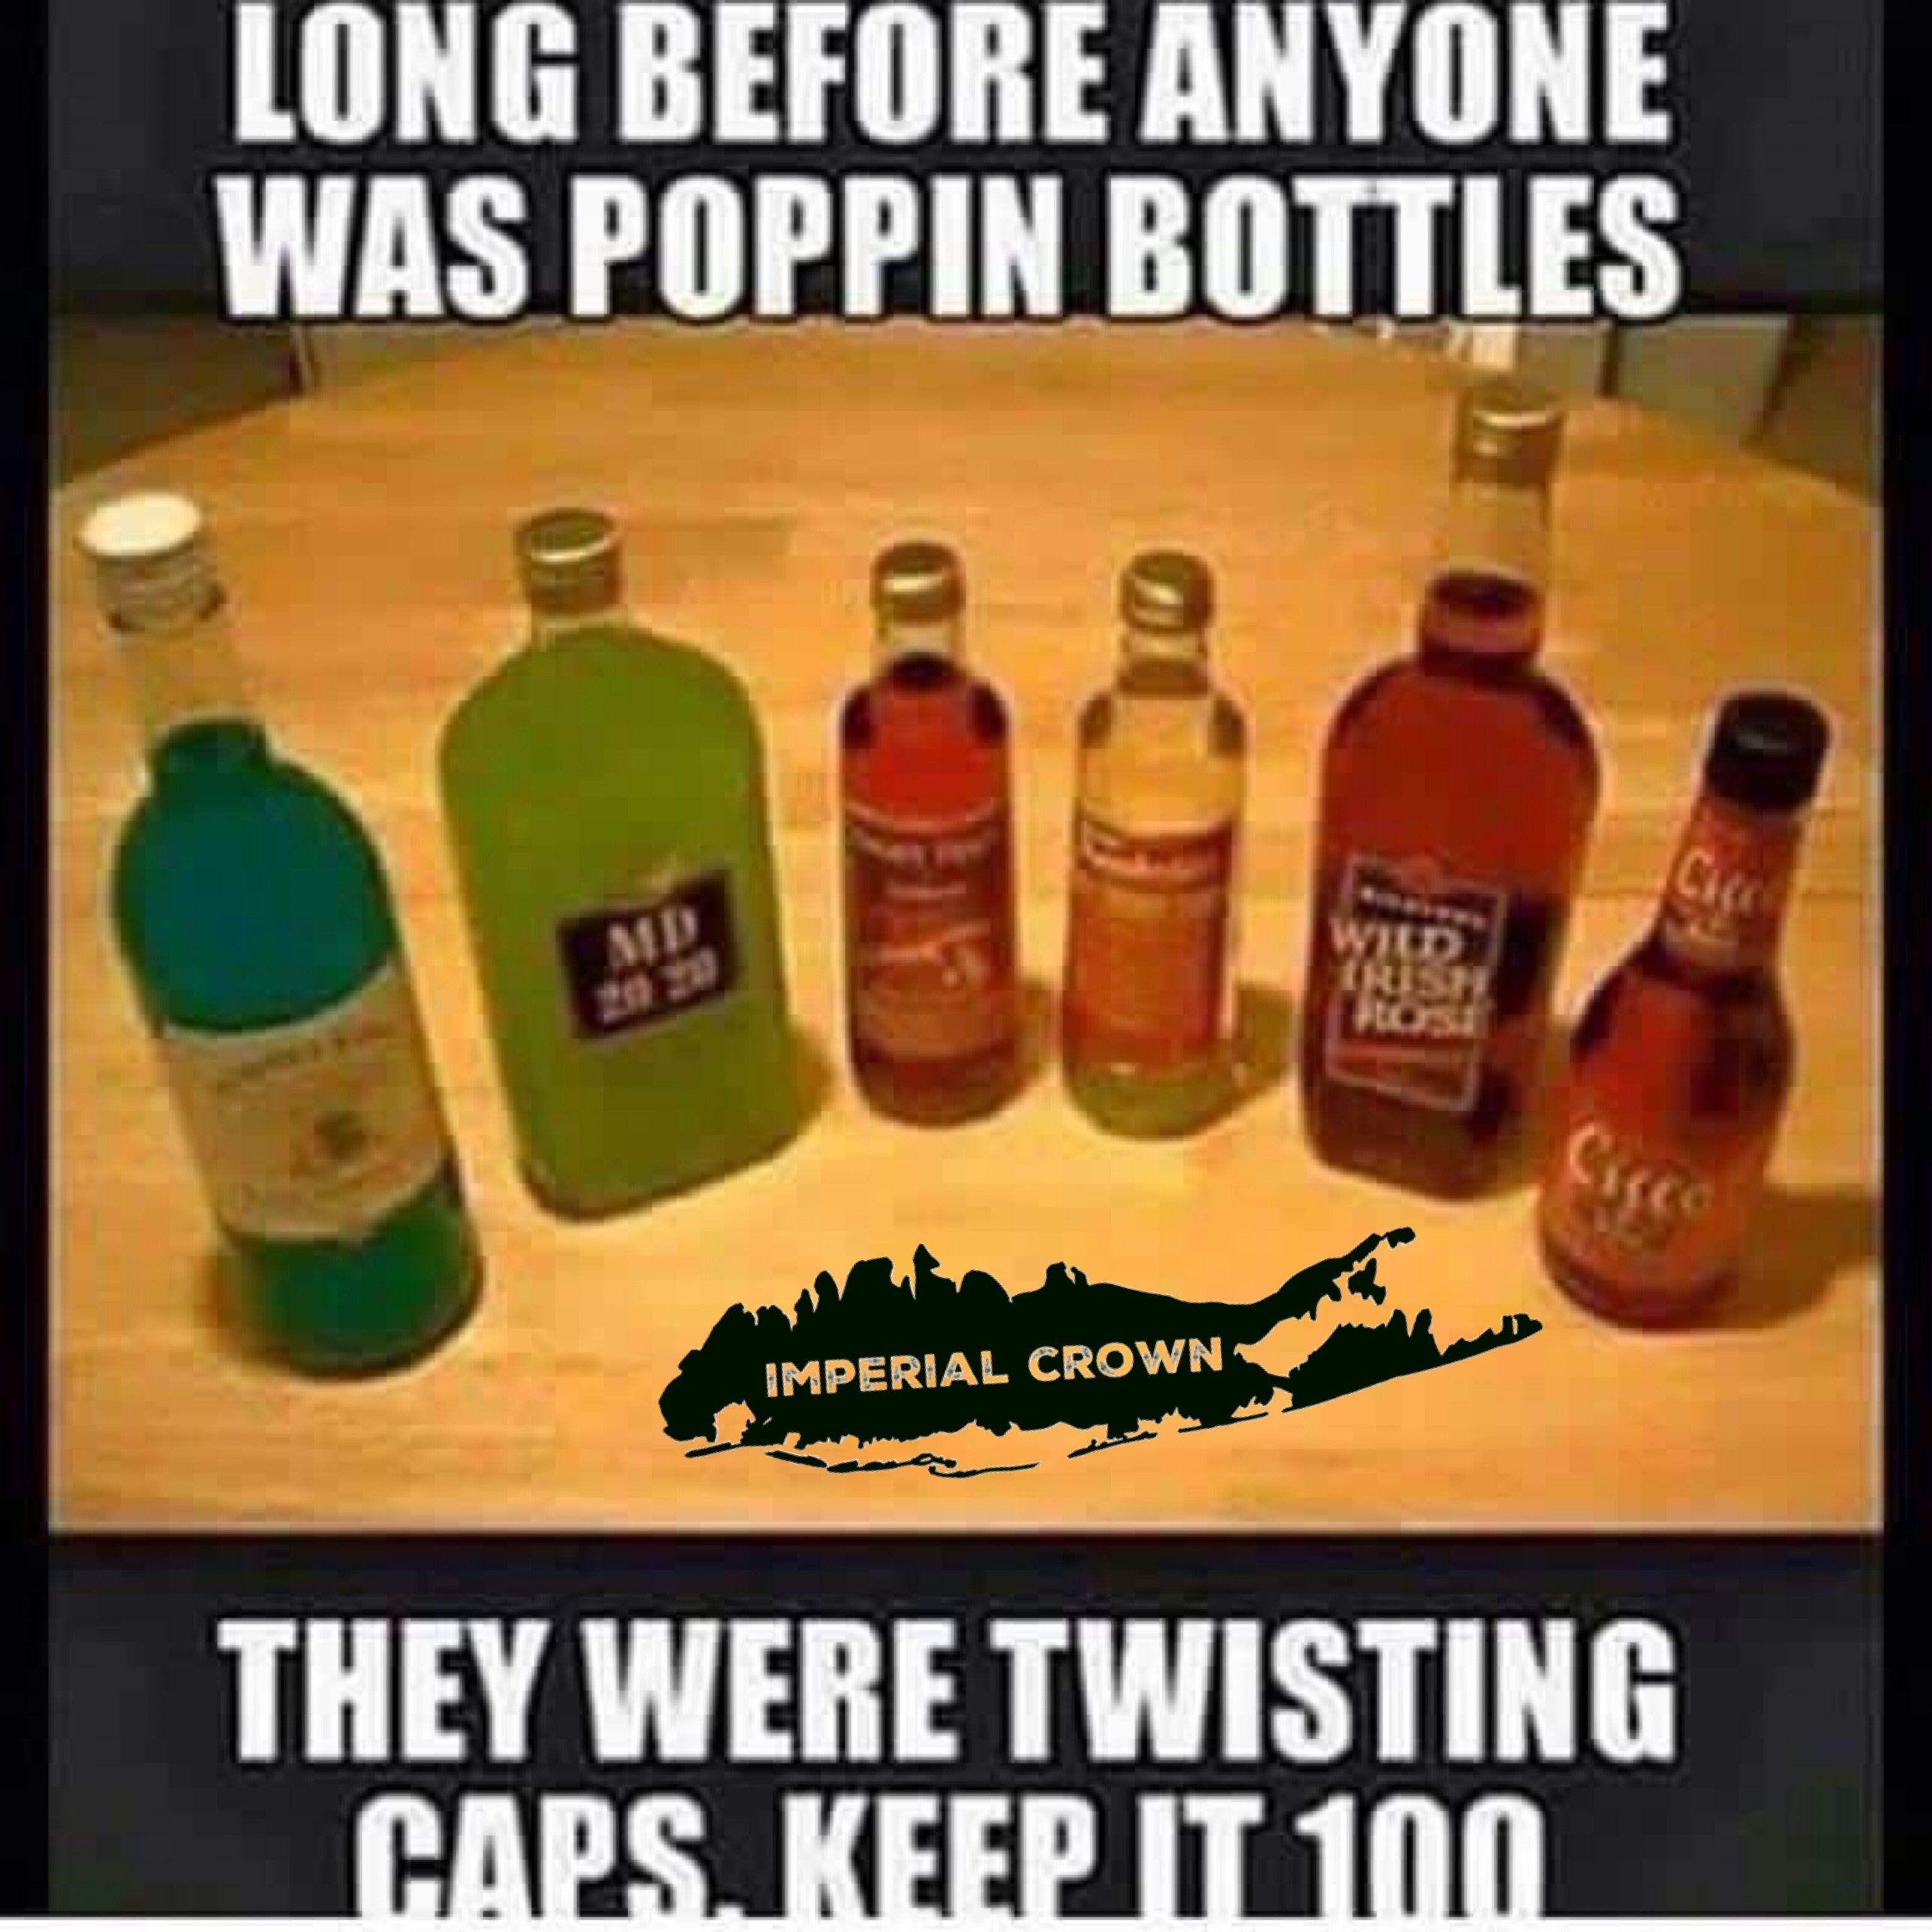 Long before anyone was poppin bottles